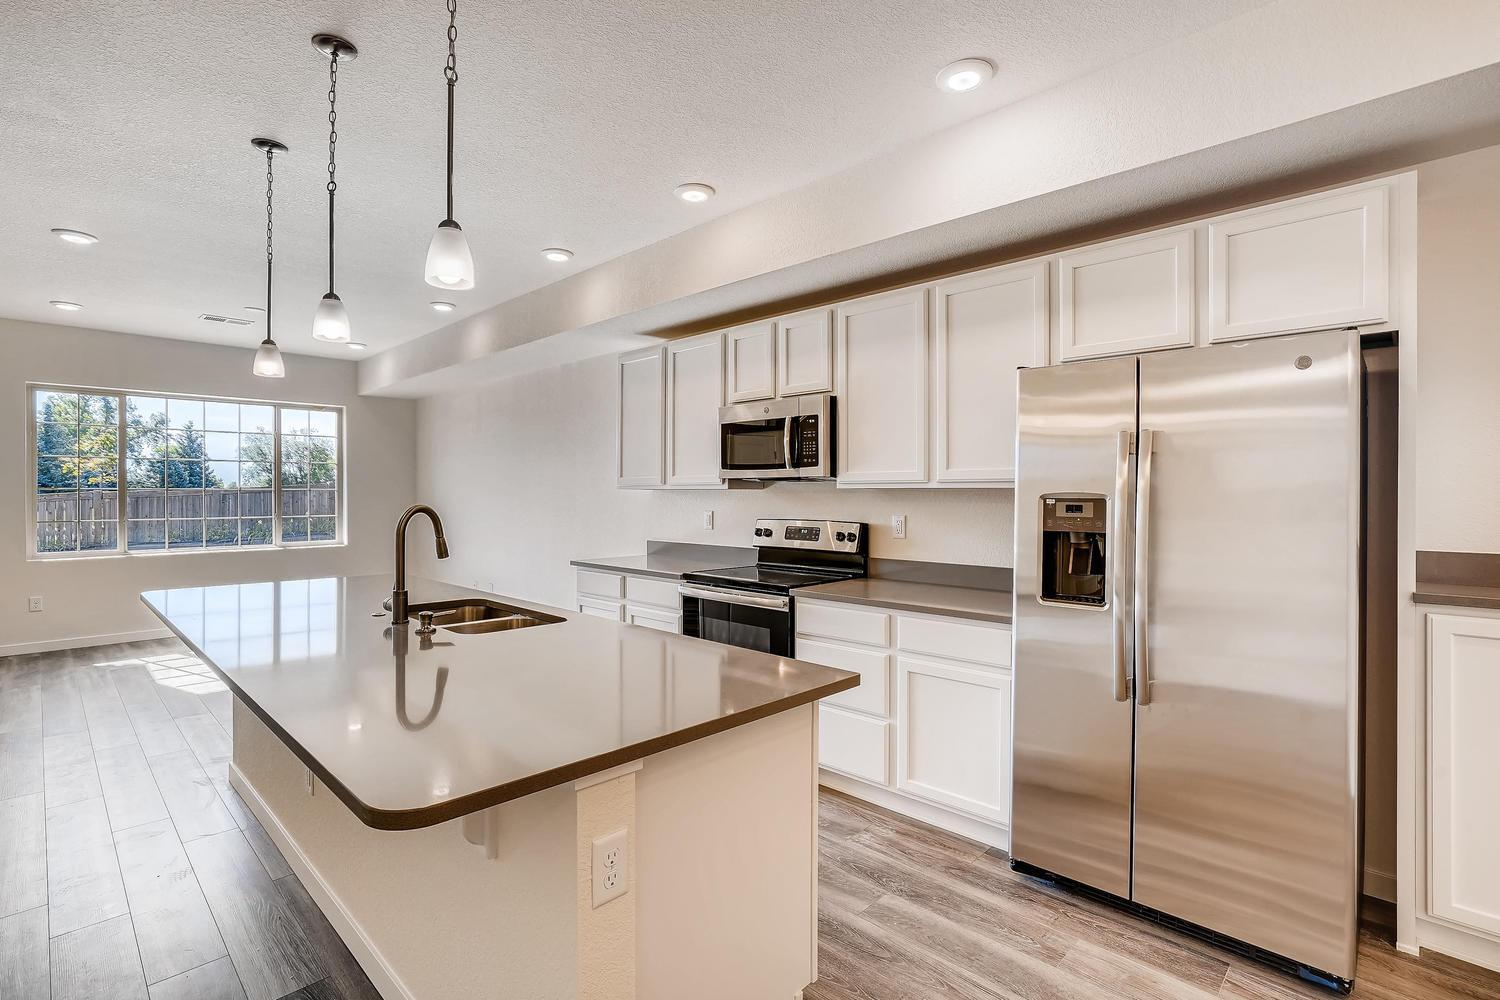 Kitchen featured in the Clear Sky By BLVDWAY Communities in Denver, CO